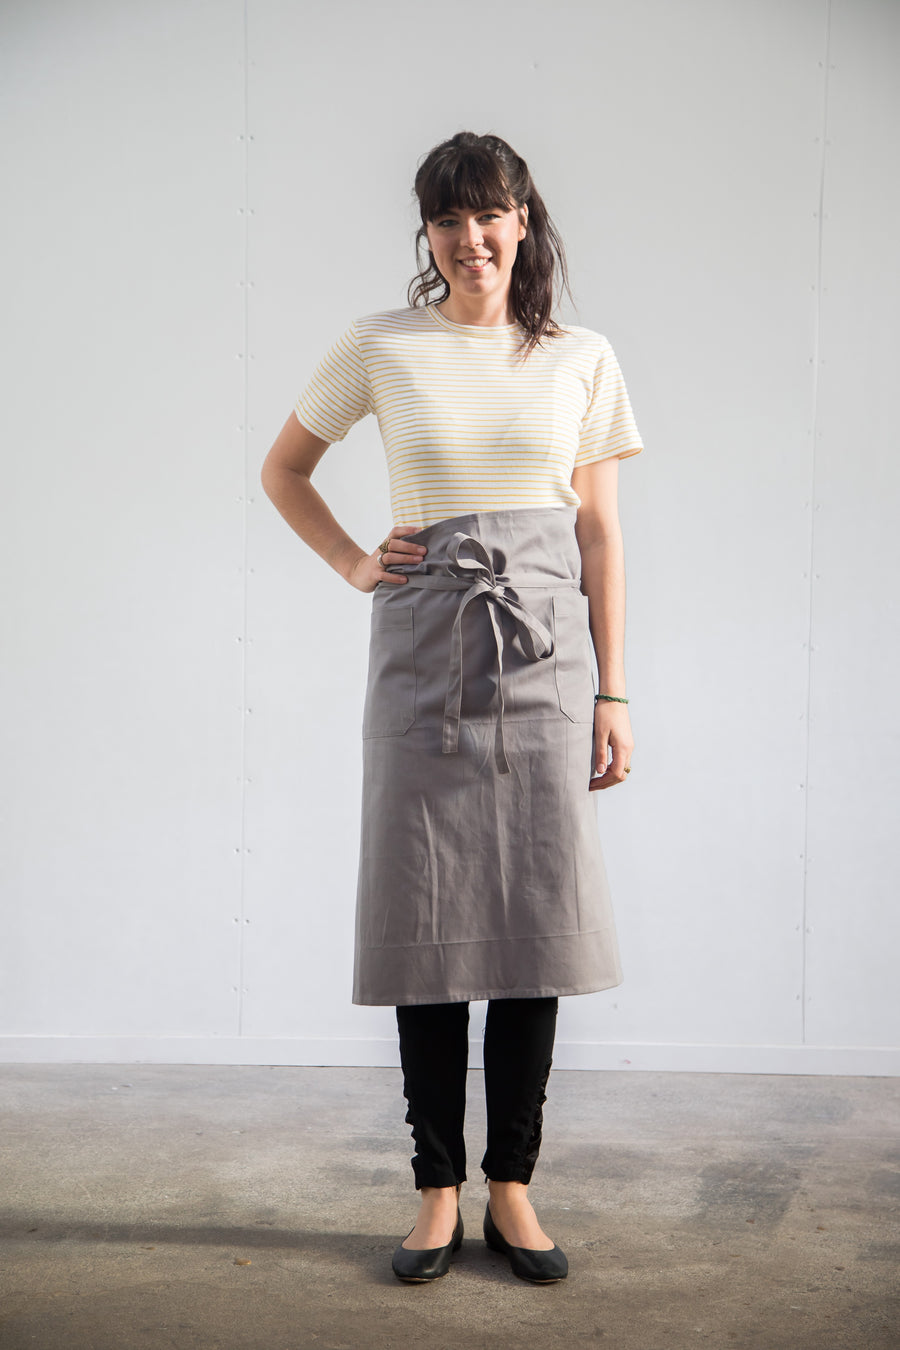 Pepper Apron - 3/4 Length